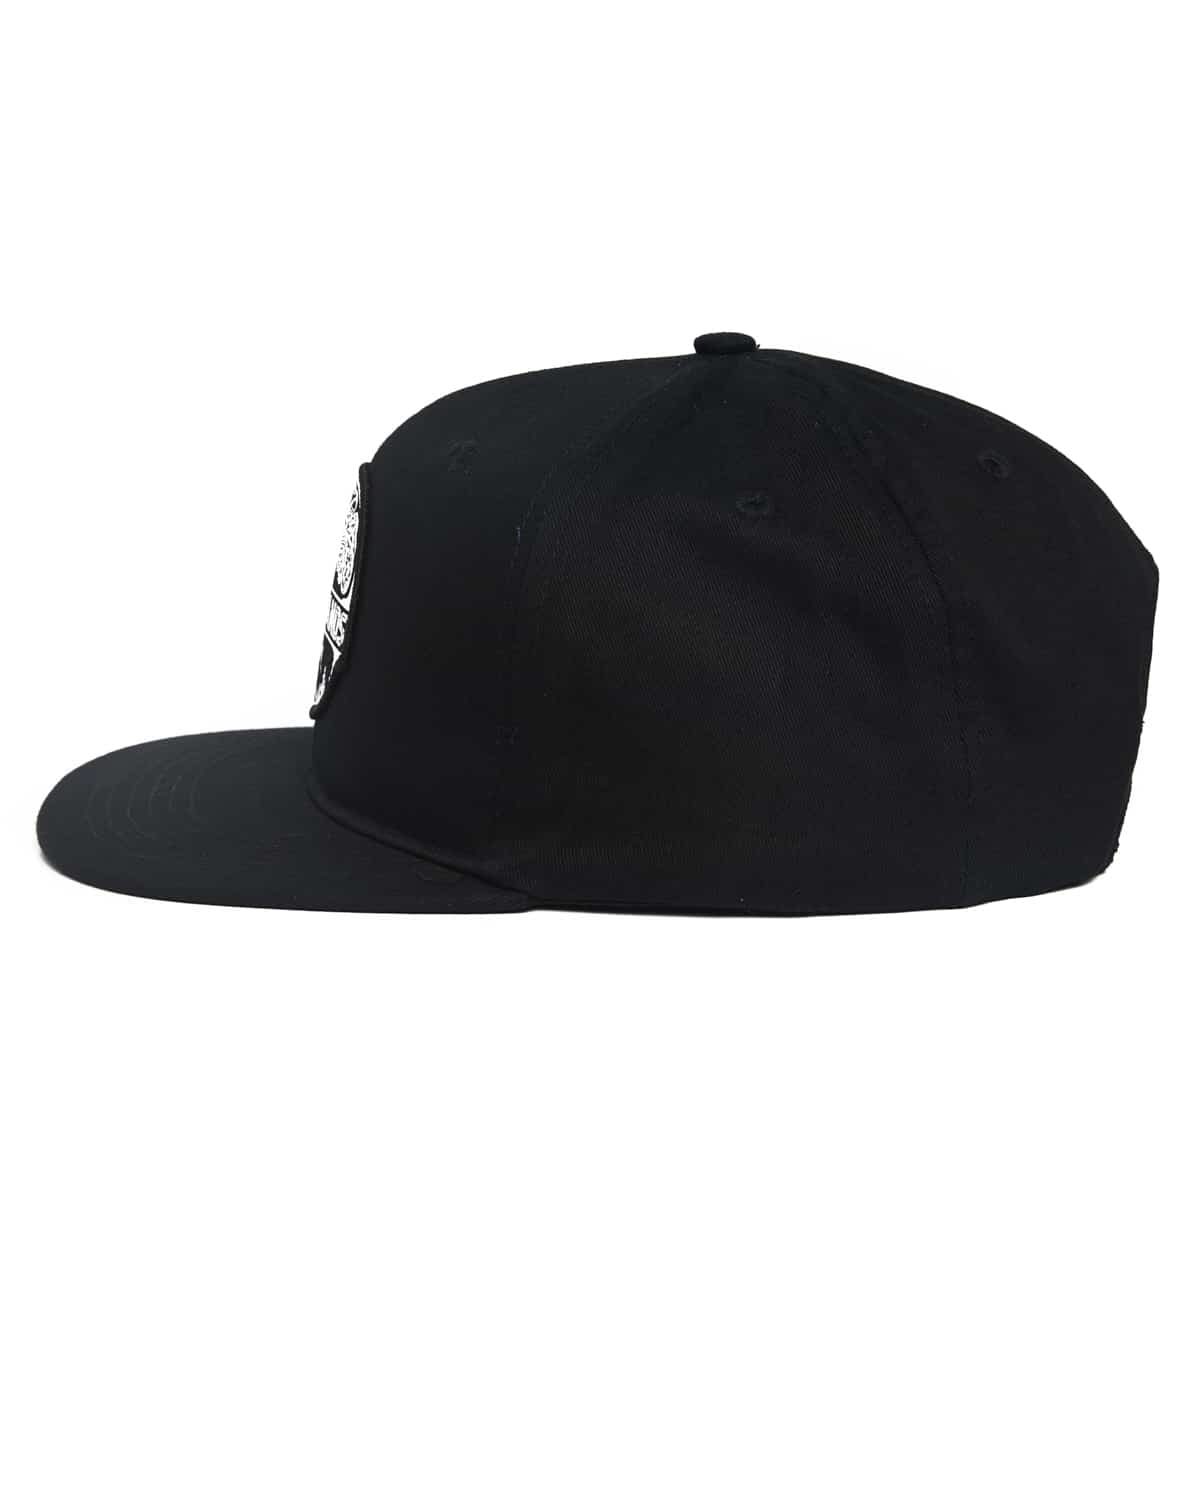 Lost Lands classic Snapback - Black